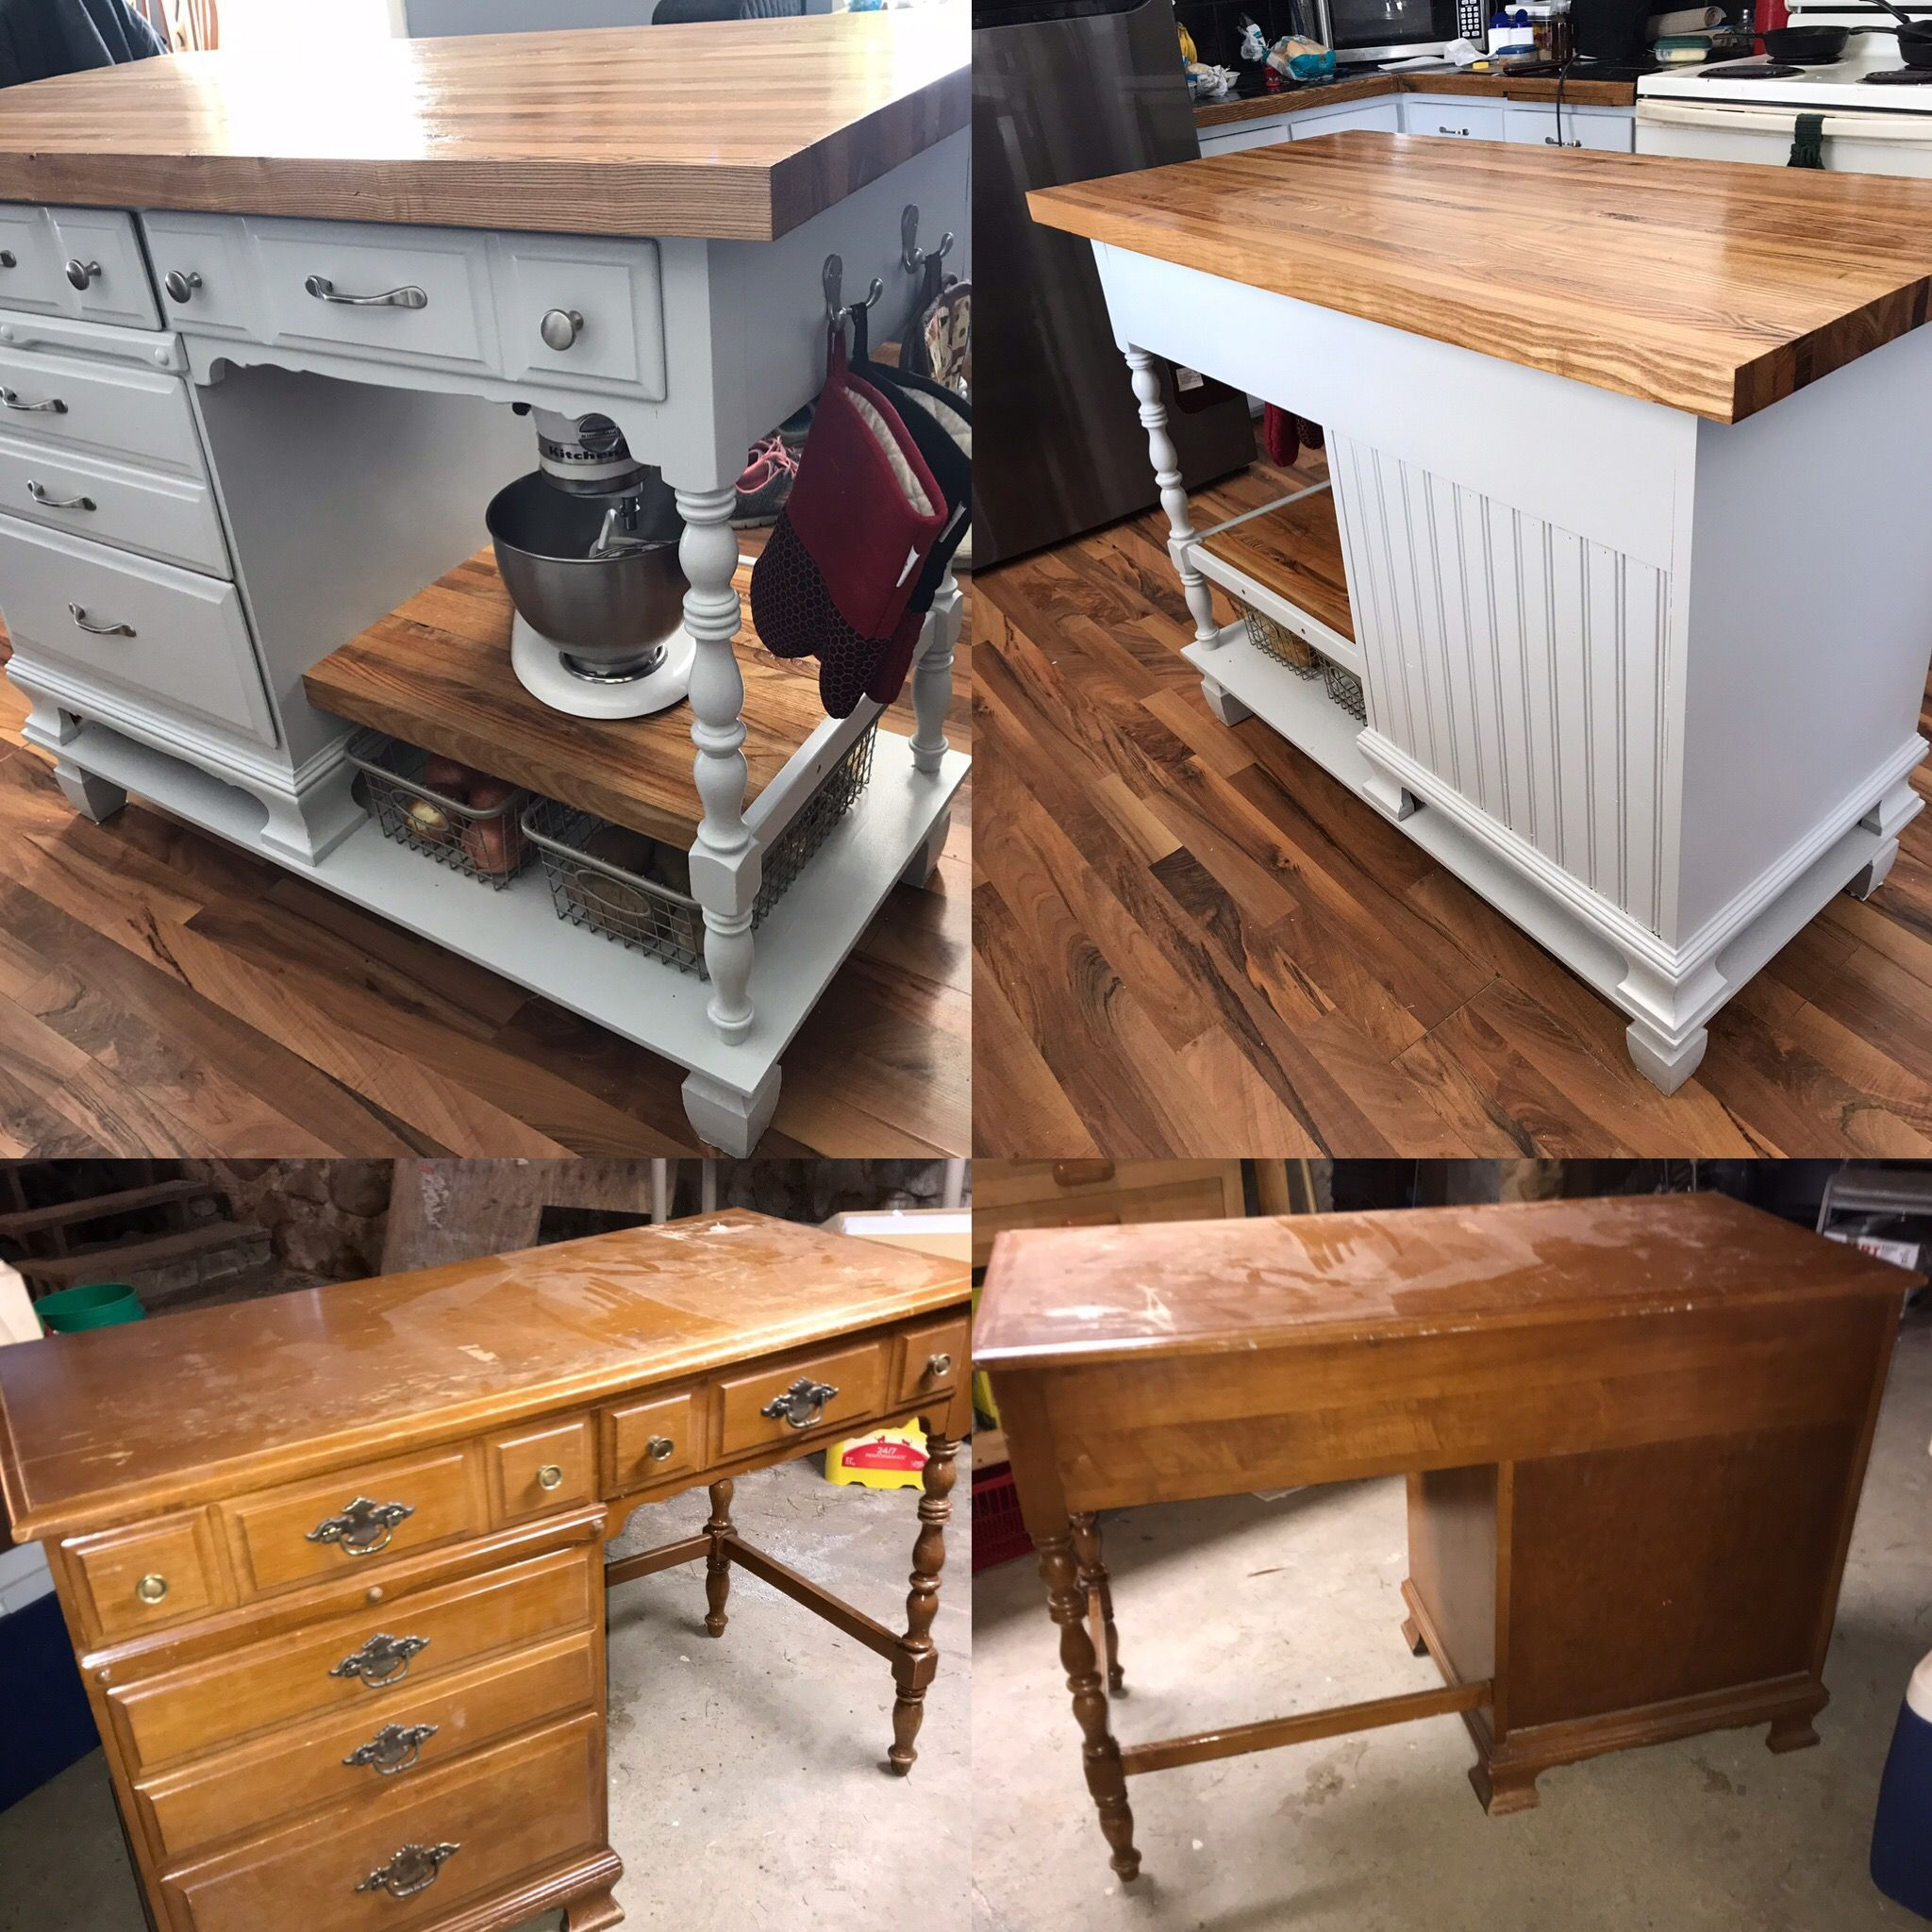 Kitchen Islands Made From Desks And How To Do It Diy Kitchen